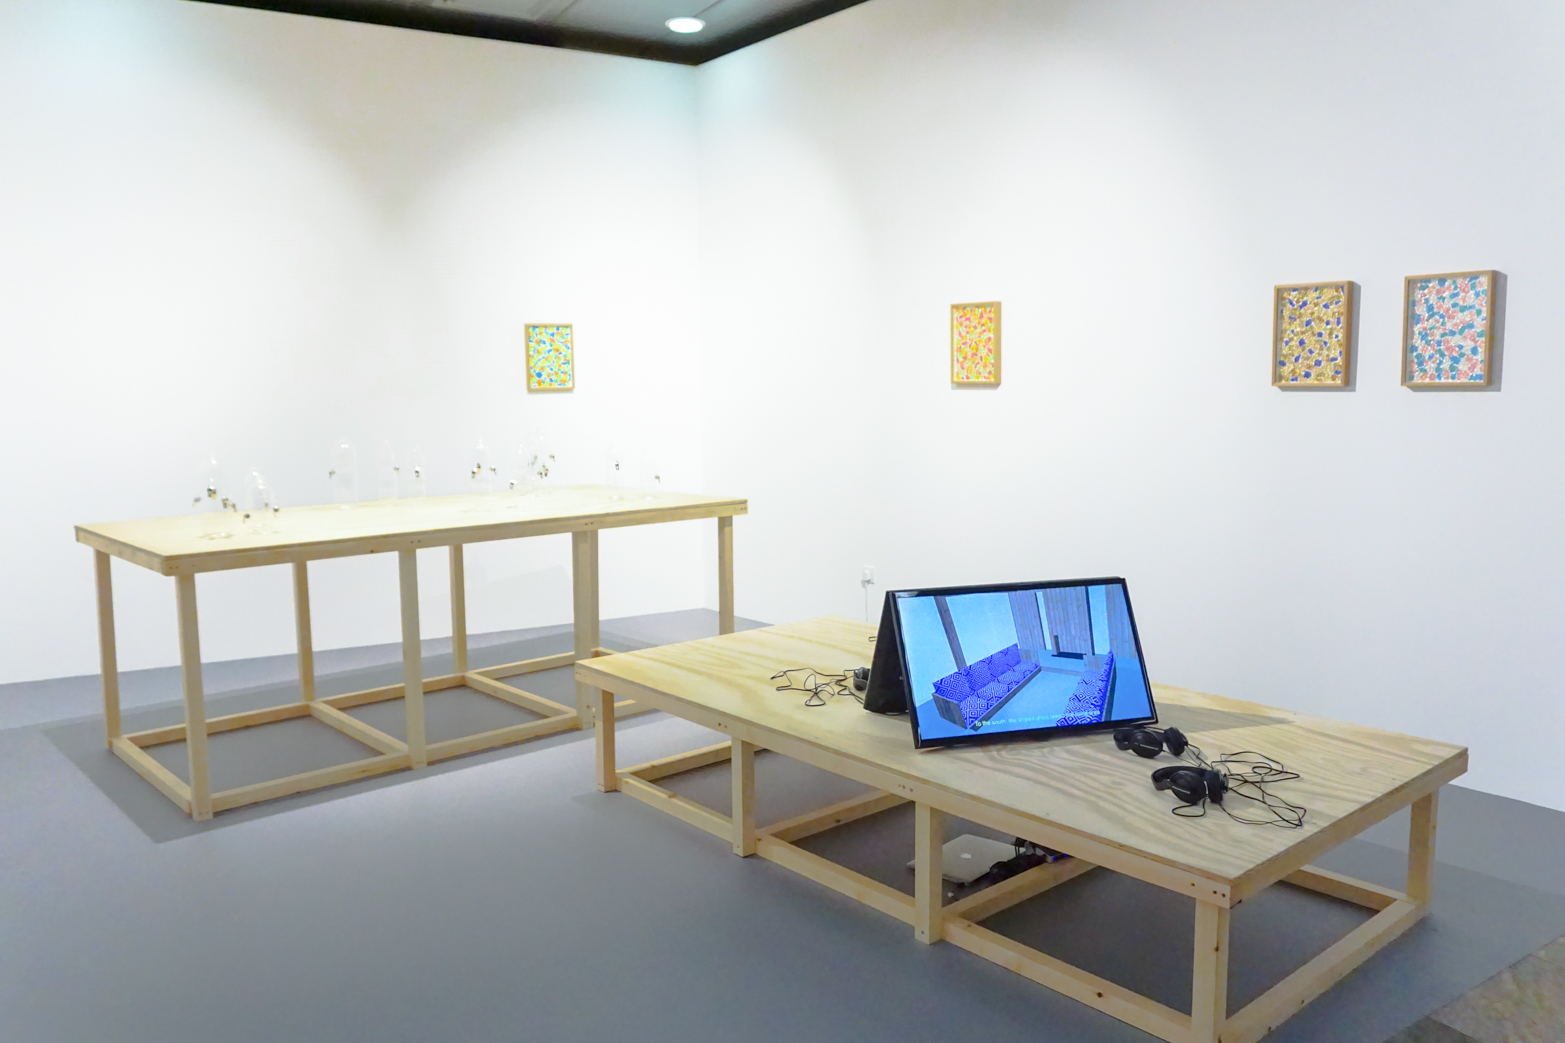 Richard Healy, The Pines, Installation view. ArtInternational Istanbul 2015. Tenderpixel.